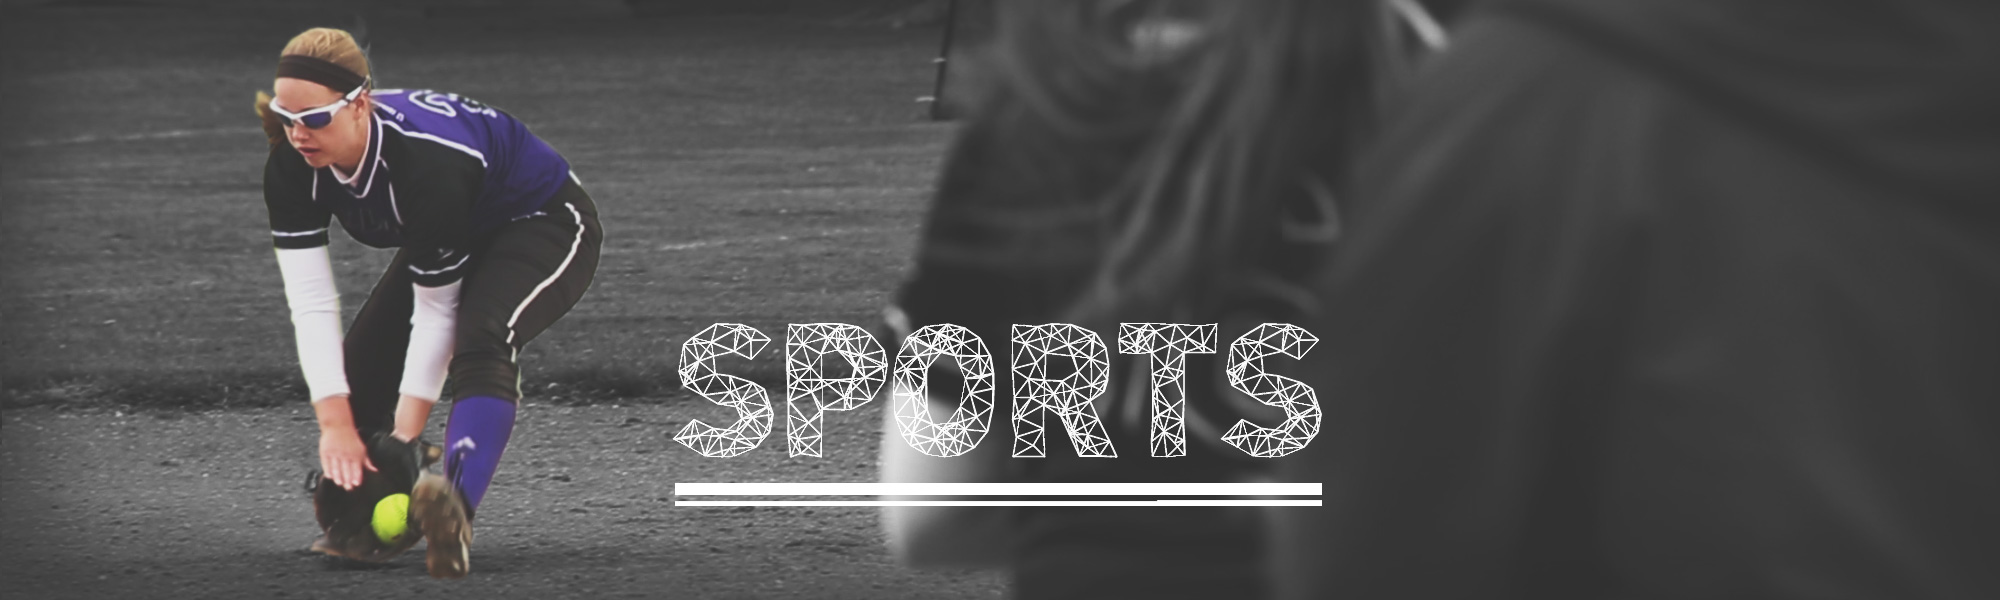 Sports Videography - Recuiting Highlights Videos